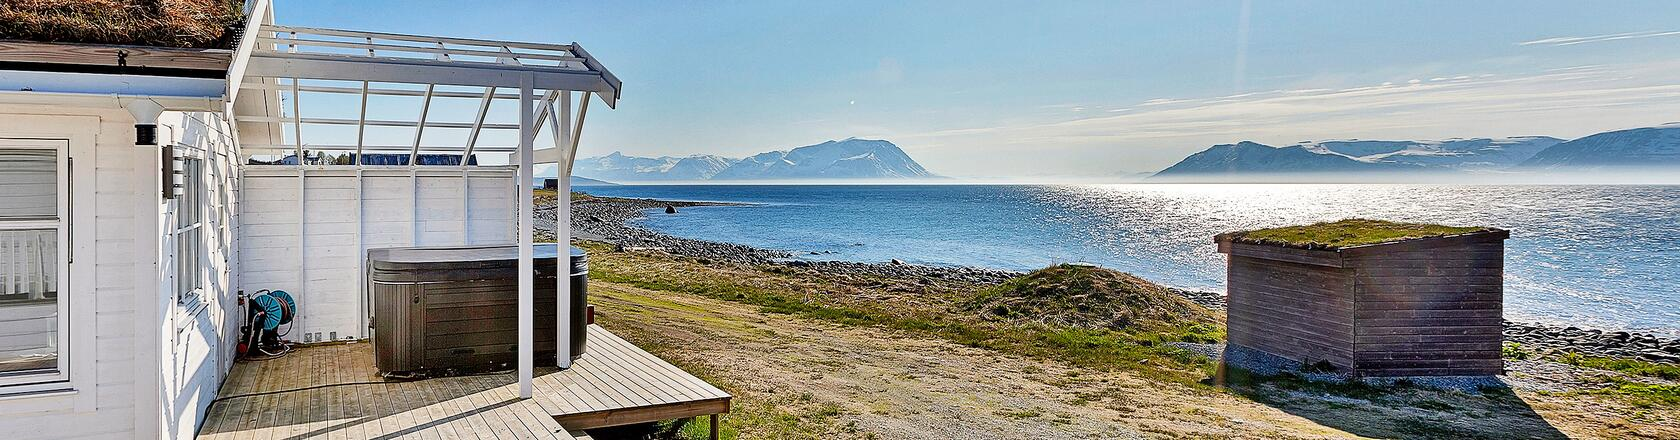 Skjervøy in Norway - Rent a holiday home  with DanCenter